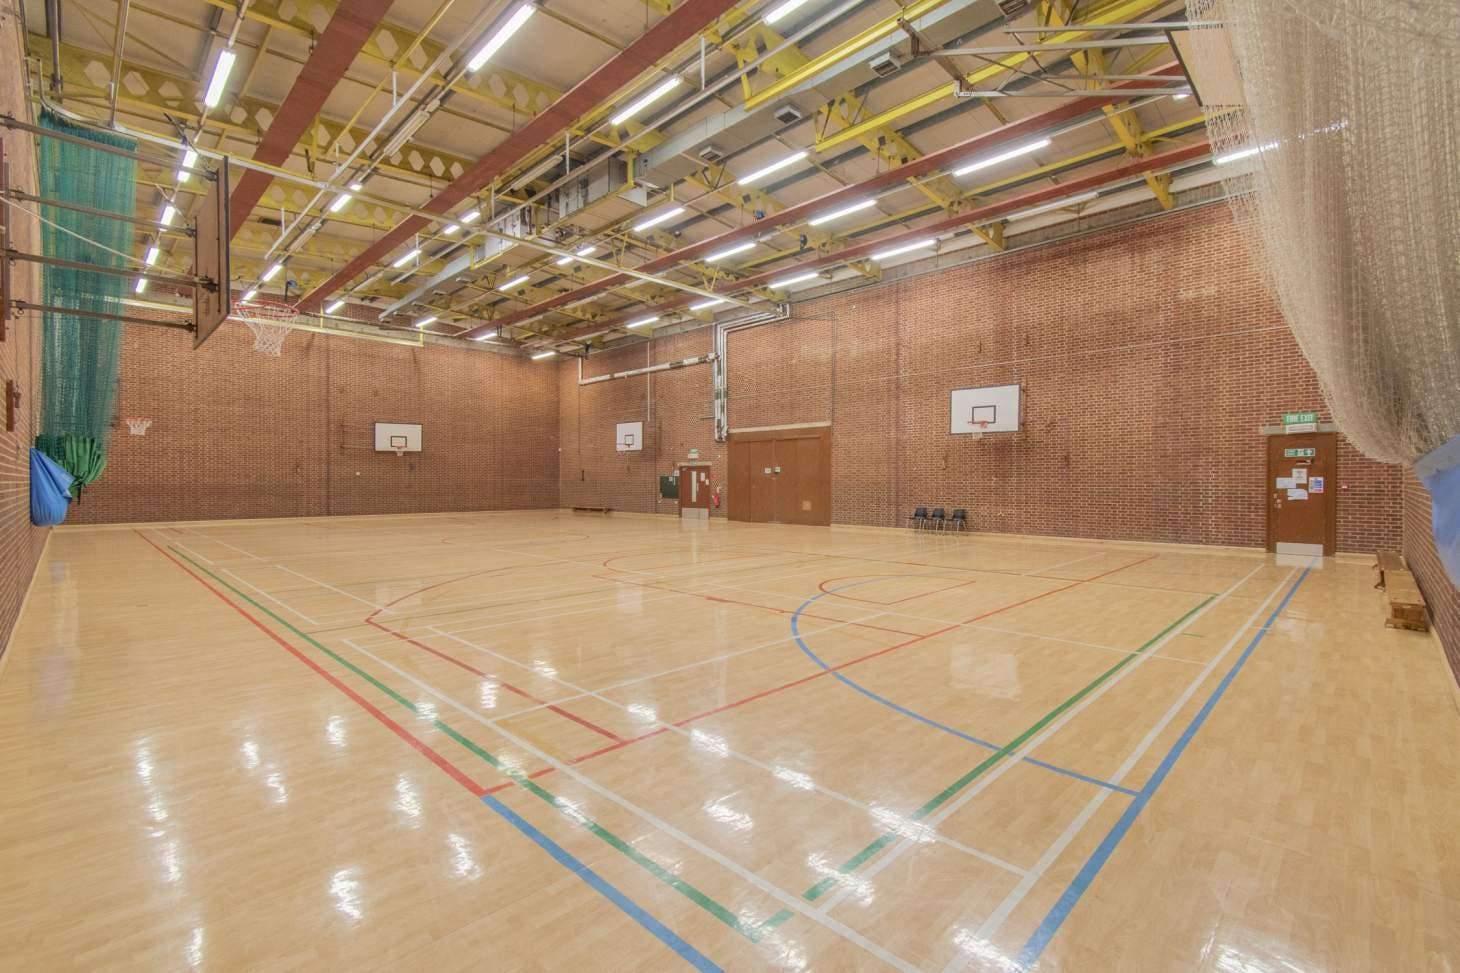 Pastures Youth and Sports Centre Court   Sports hall badminton court